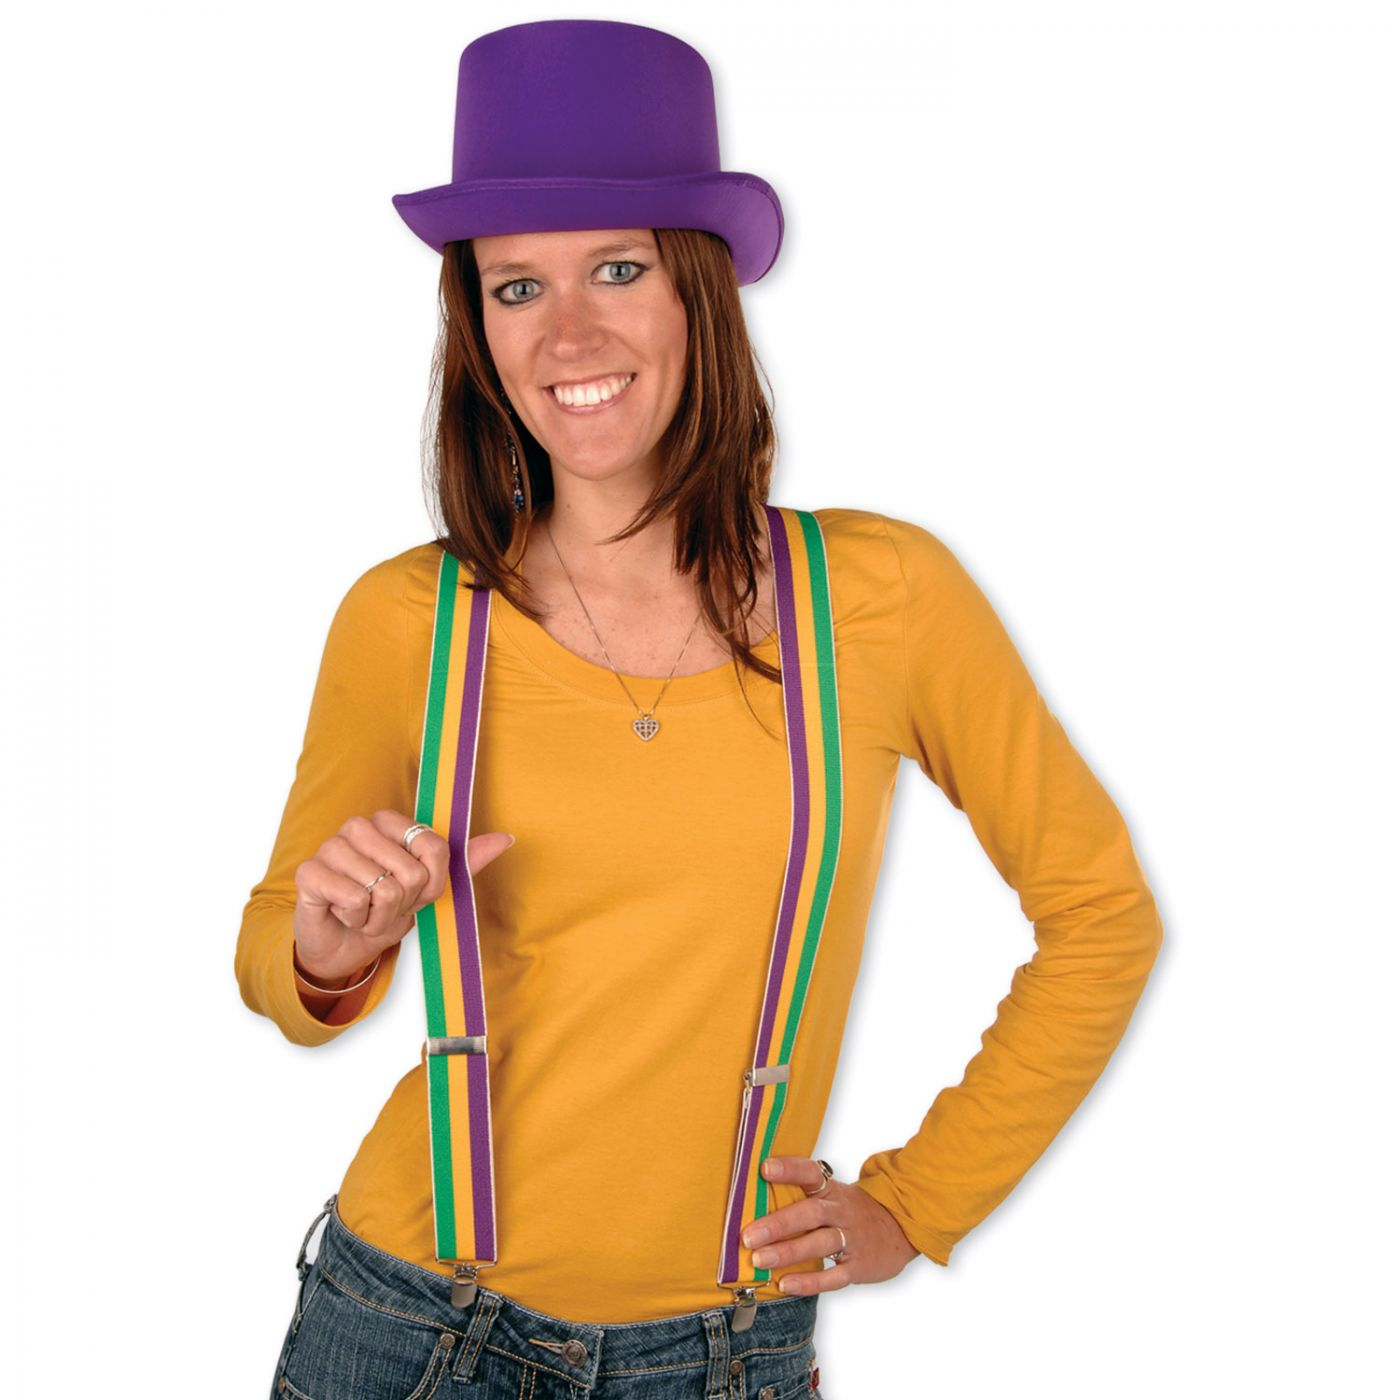 Mardi Gras Suspenders image